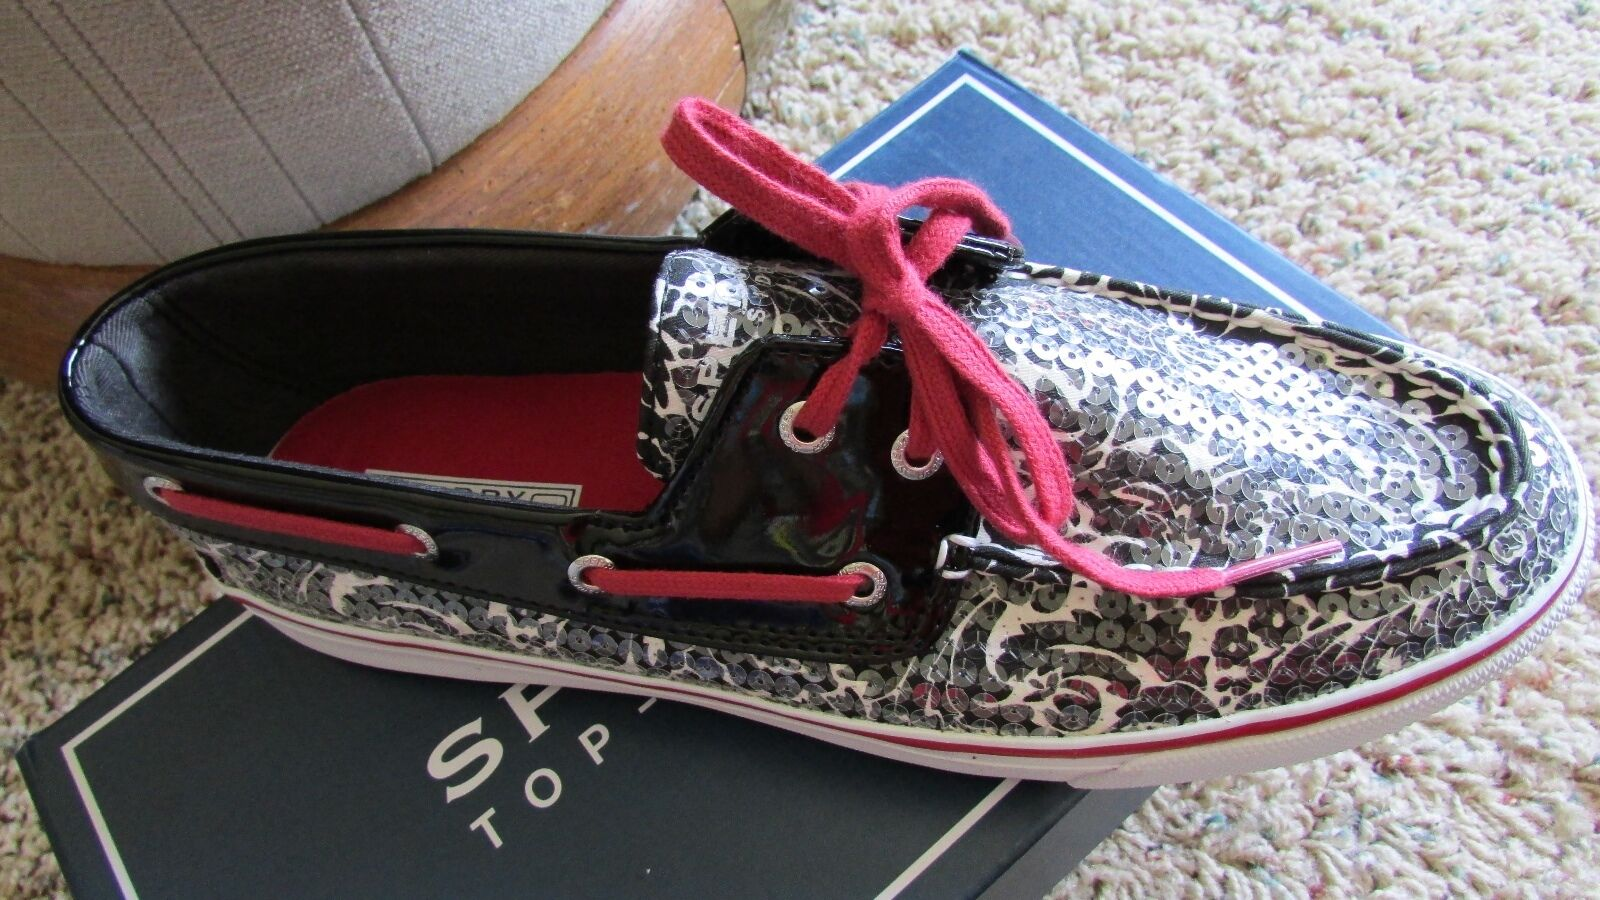 NEW Schuhe SPERRY TOP-SIDER BISCAYNE BLACK SEQUIN BOAT Schuhe NEW Damenschuhe 6.5 737ec0